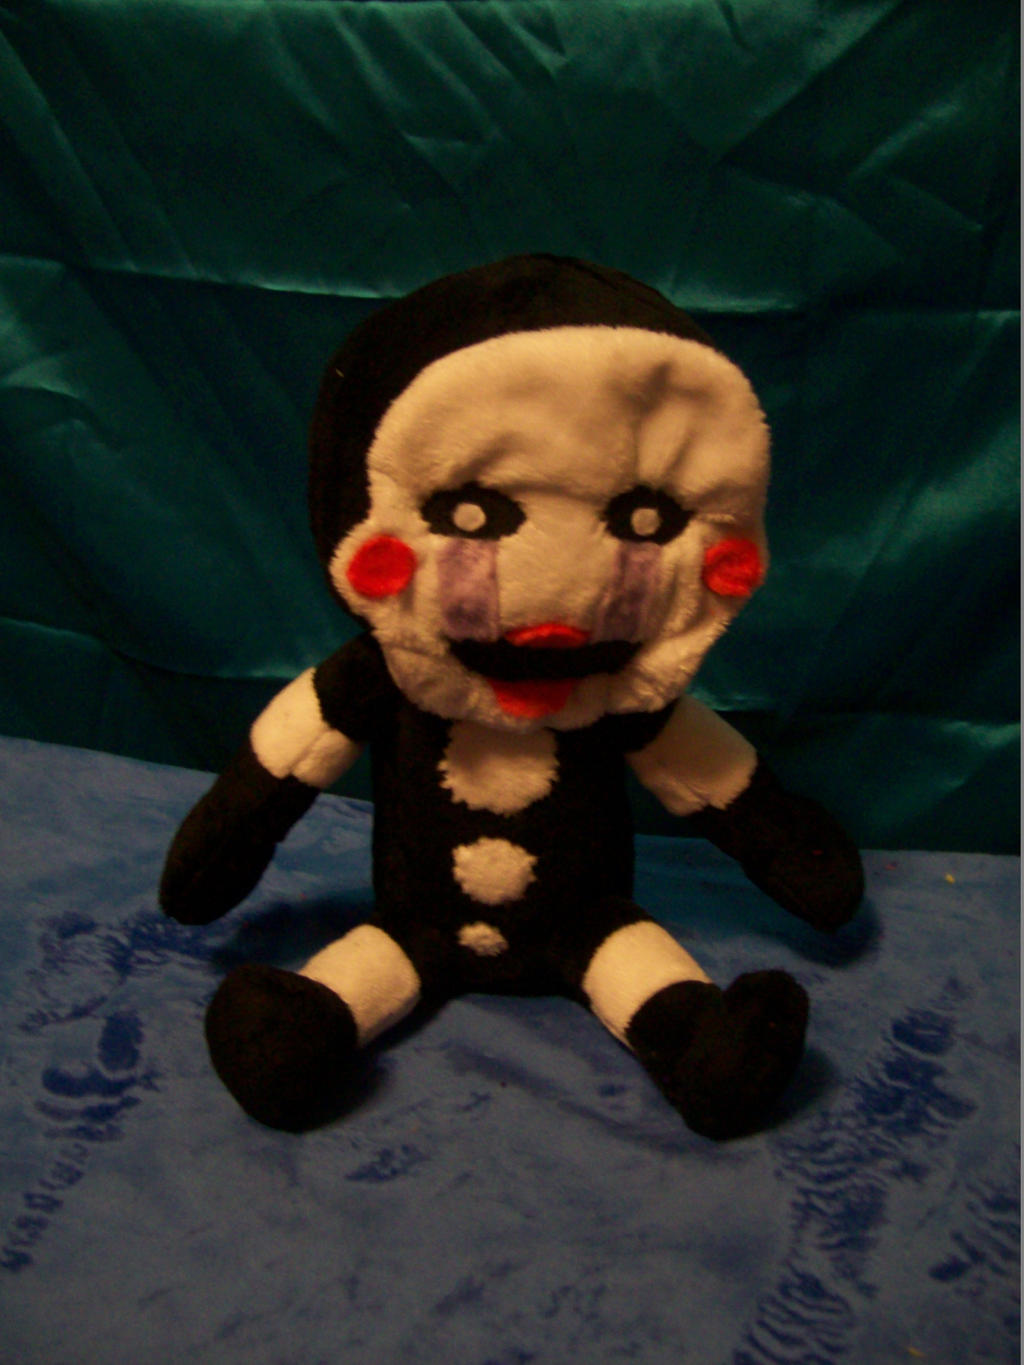 Mangle plushie for sale myideasbedroom com - Filename Five_night_at_freddy_s_puppet_plush__by_pollyrockets D89ewo7 Jpg